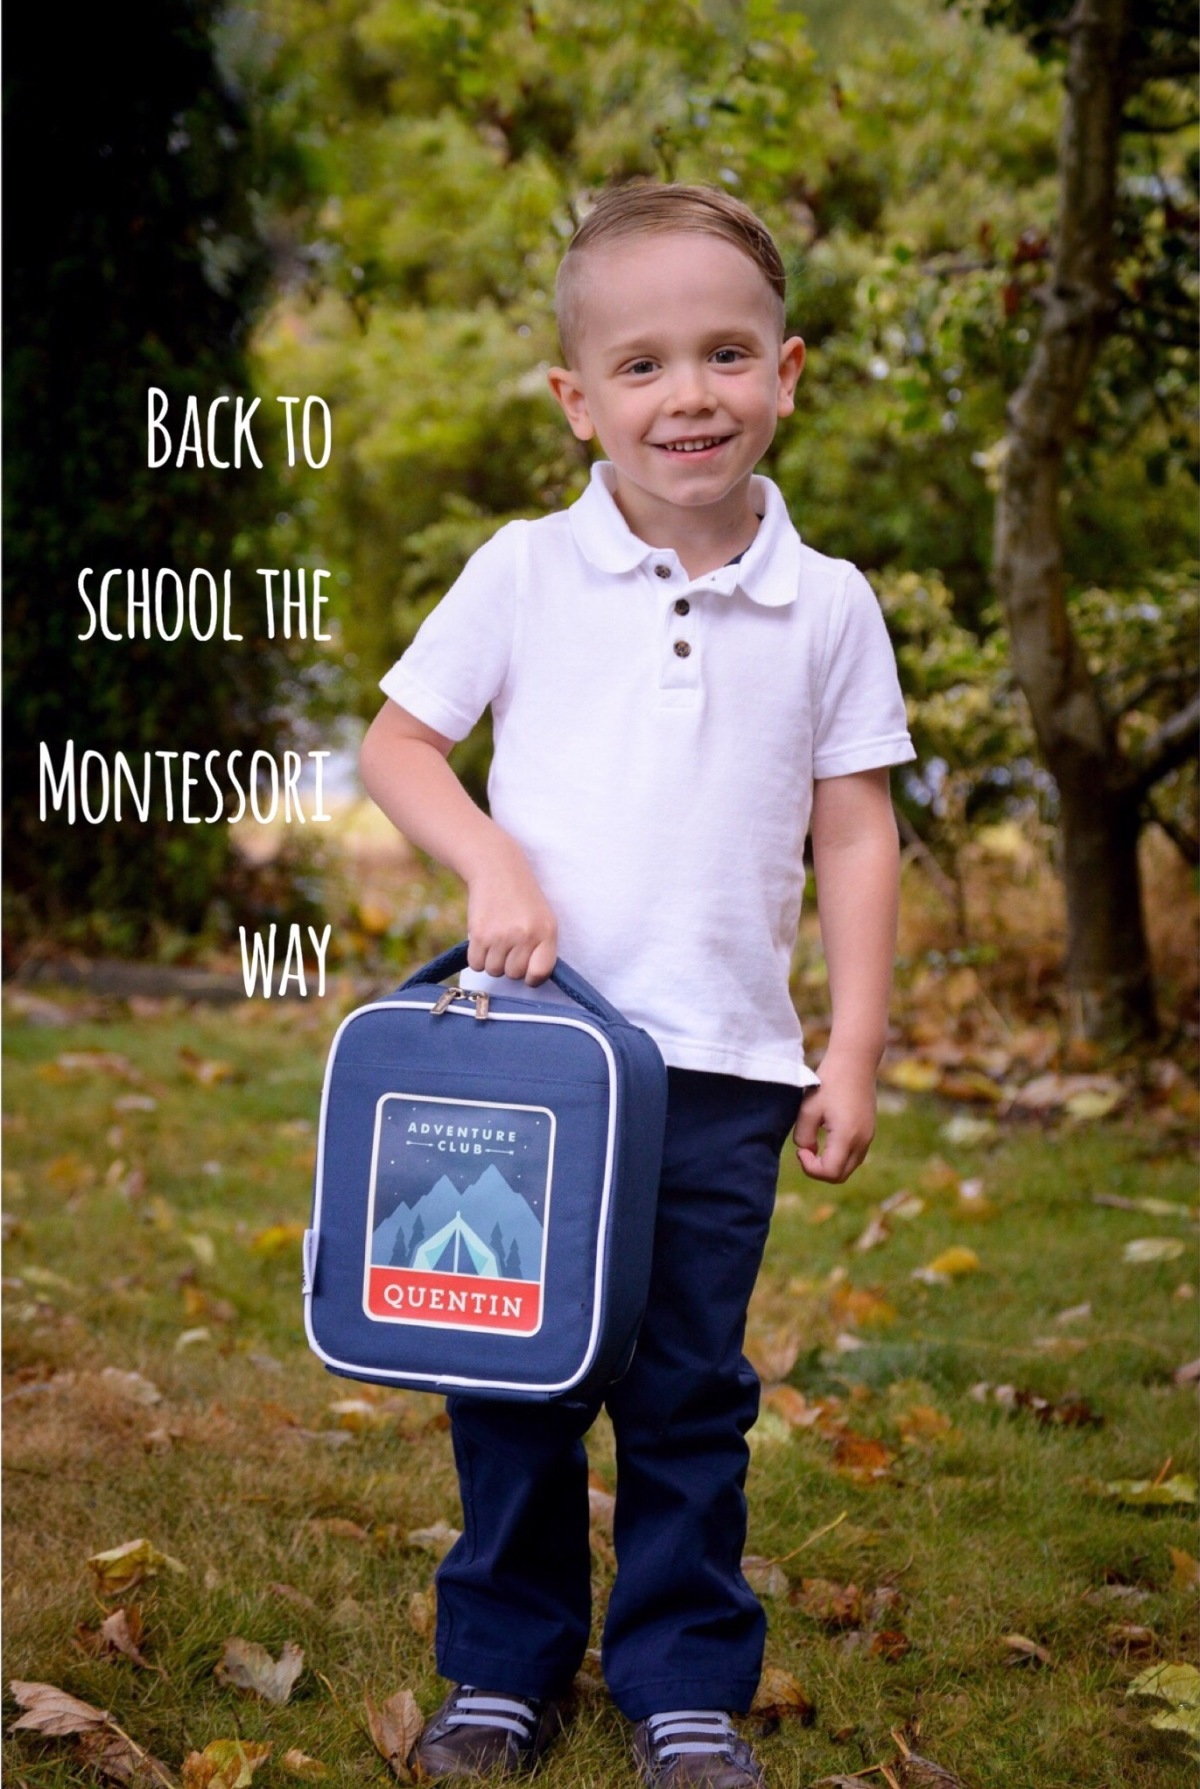 Back to school the Montessori way – Part 1: An overview